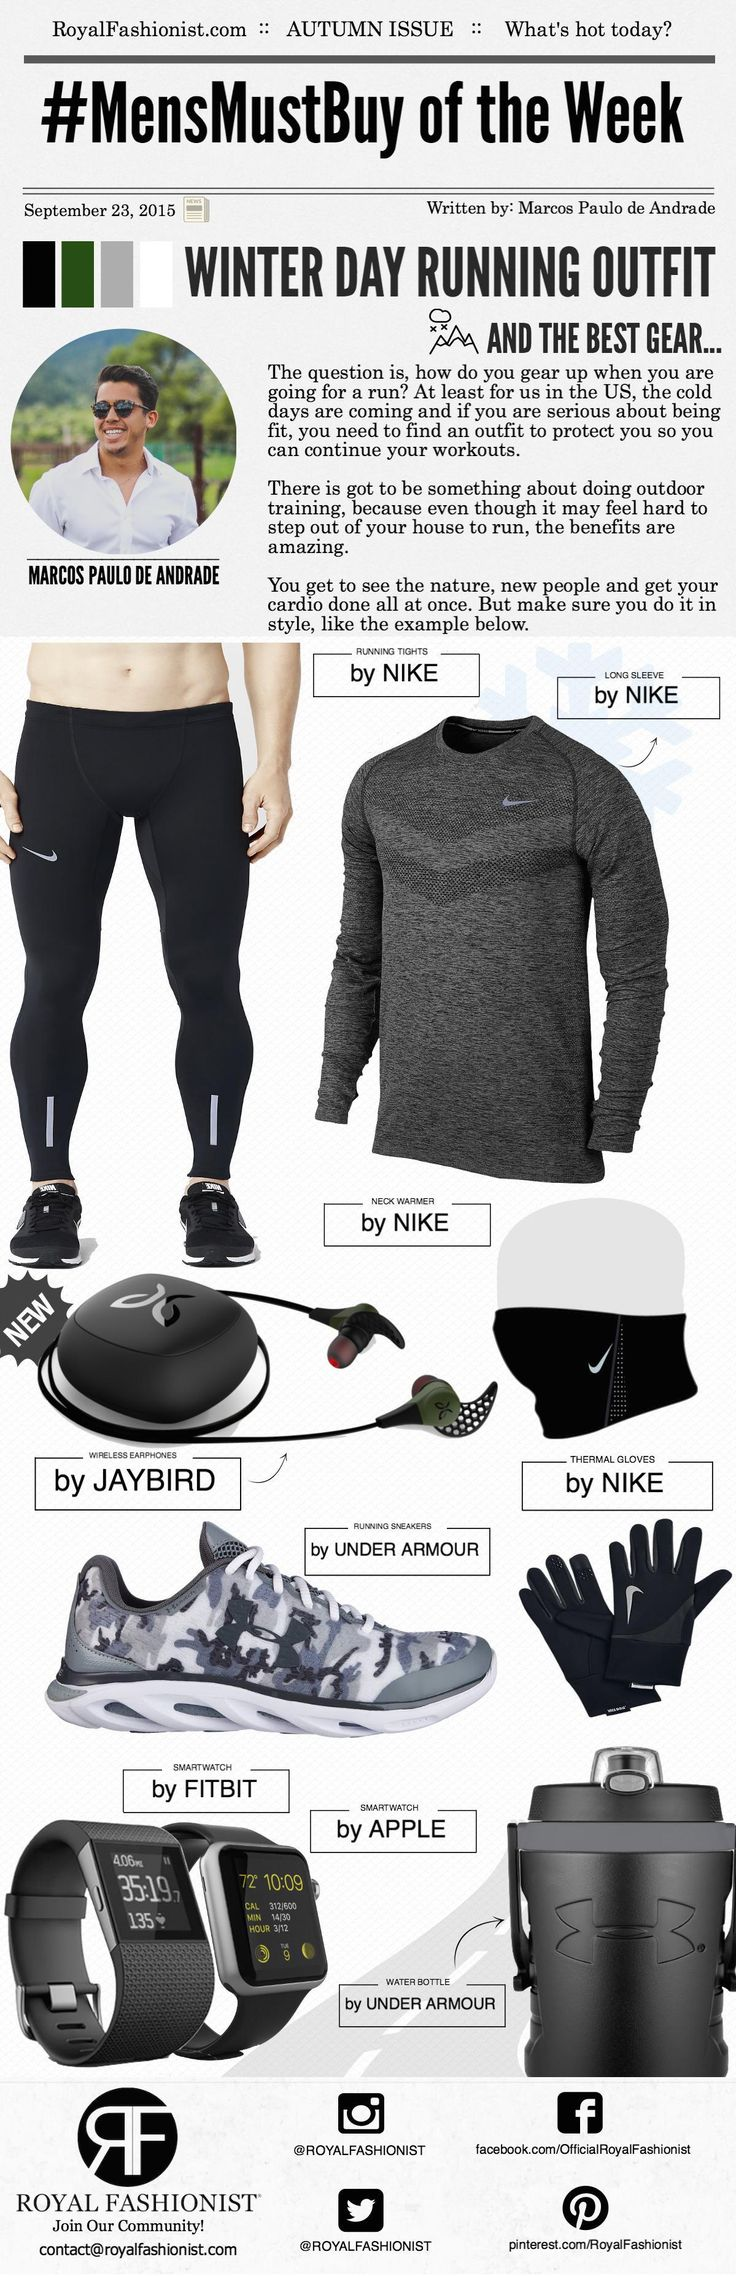 The question is, how do you gear up when you are going for a run? At least for us in the US, the cold days are coming and if you are serious about being fit, you need to find an outfit to protect you so you can continue your workouts. There is got to be